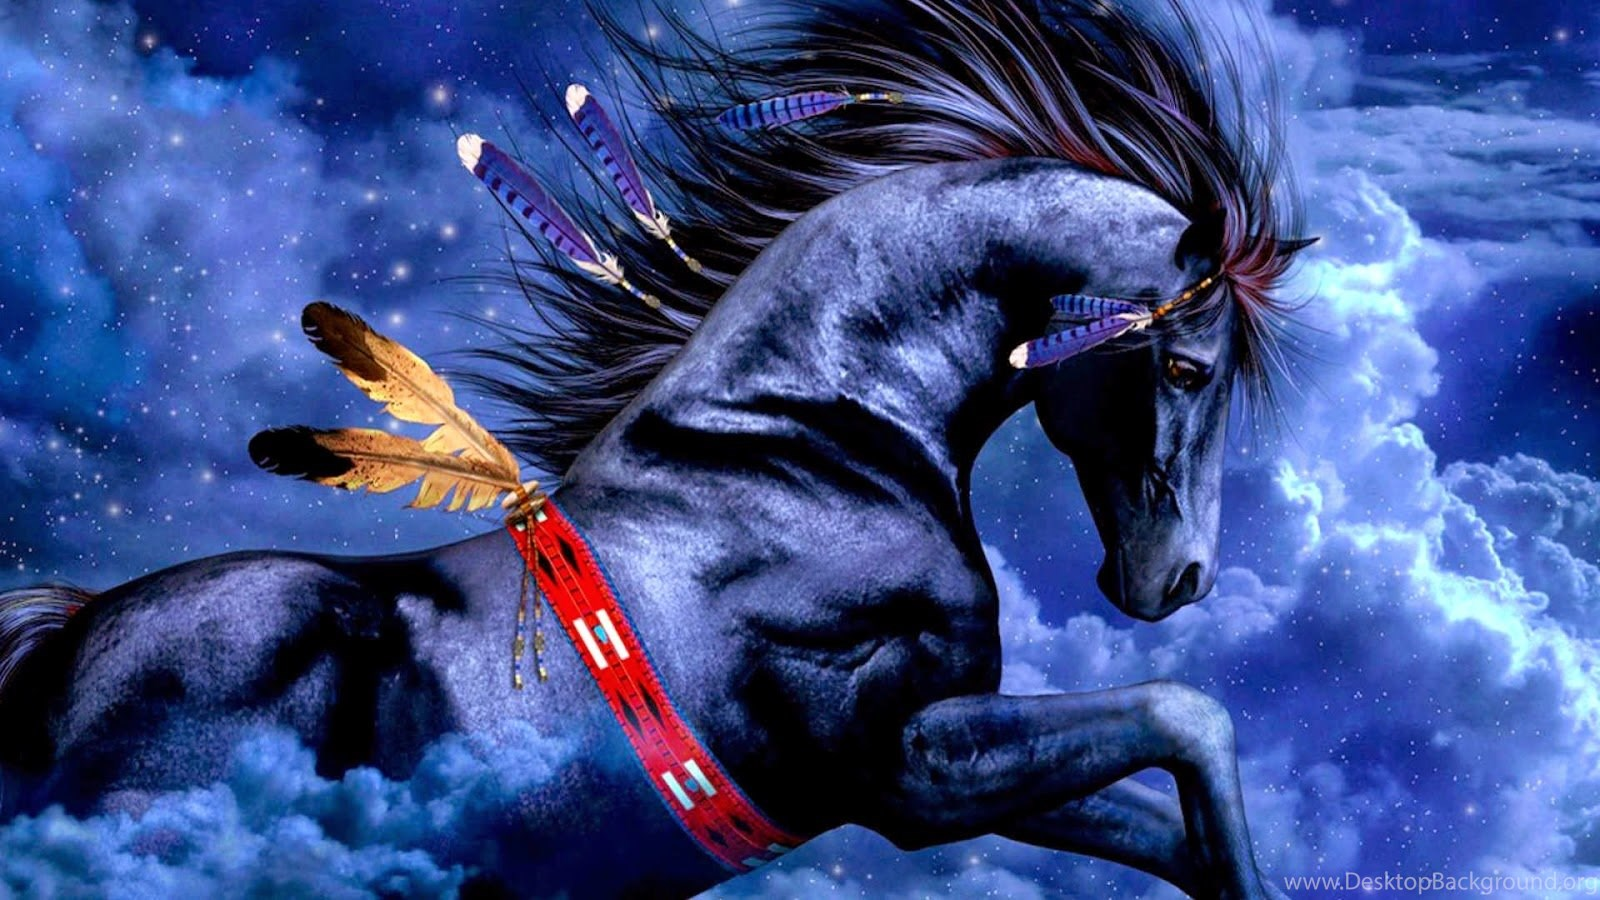 Blue Horse 3d Wallpapers Hd Download Wallpapers For Pc Desktop Background